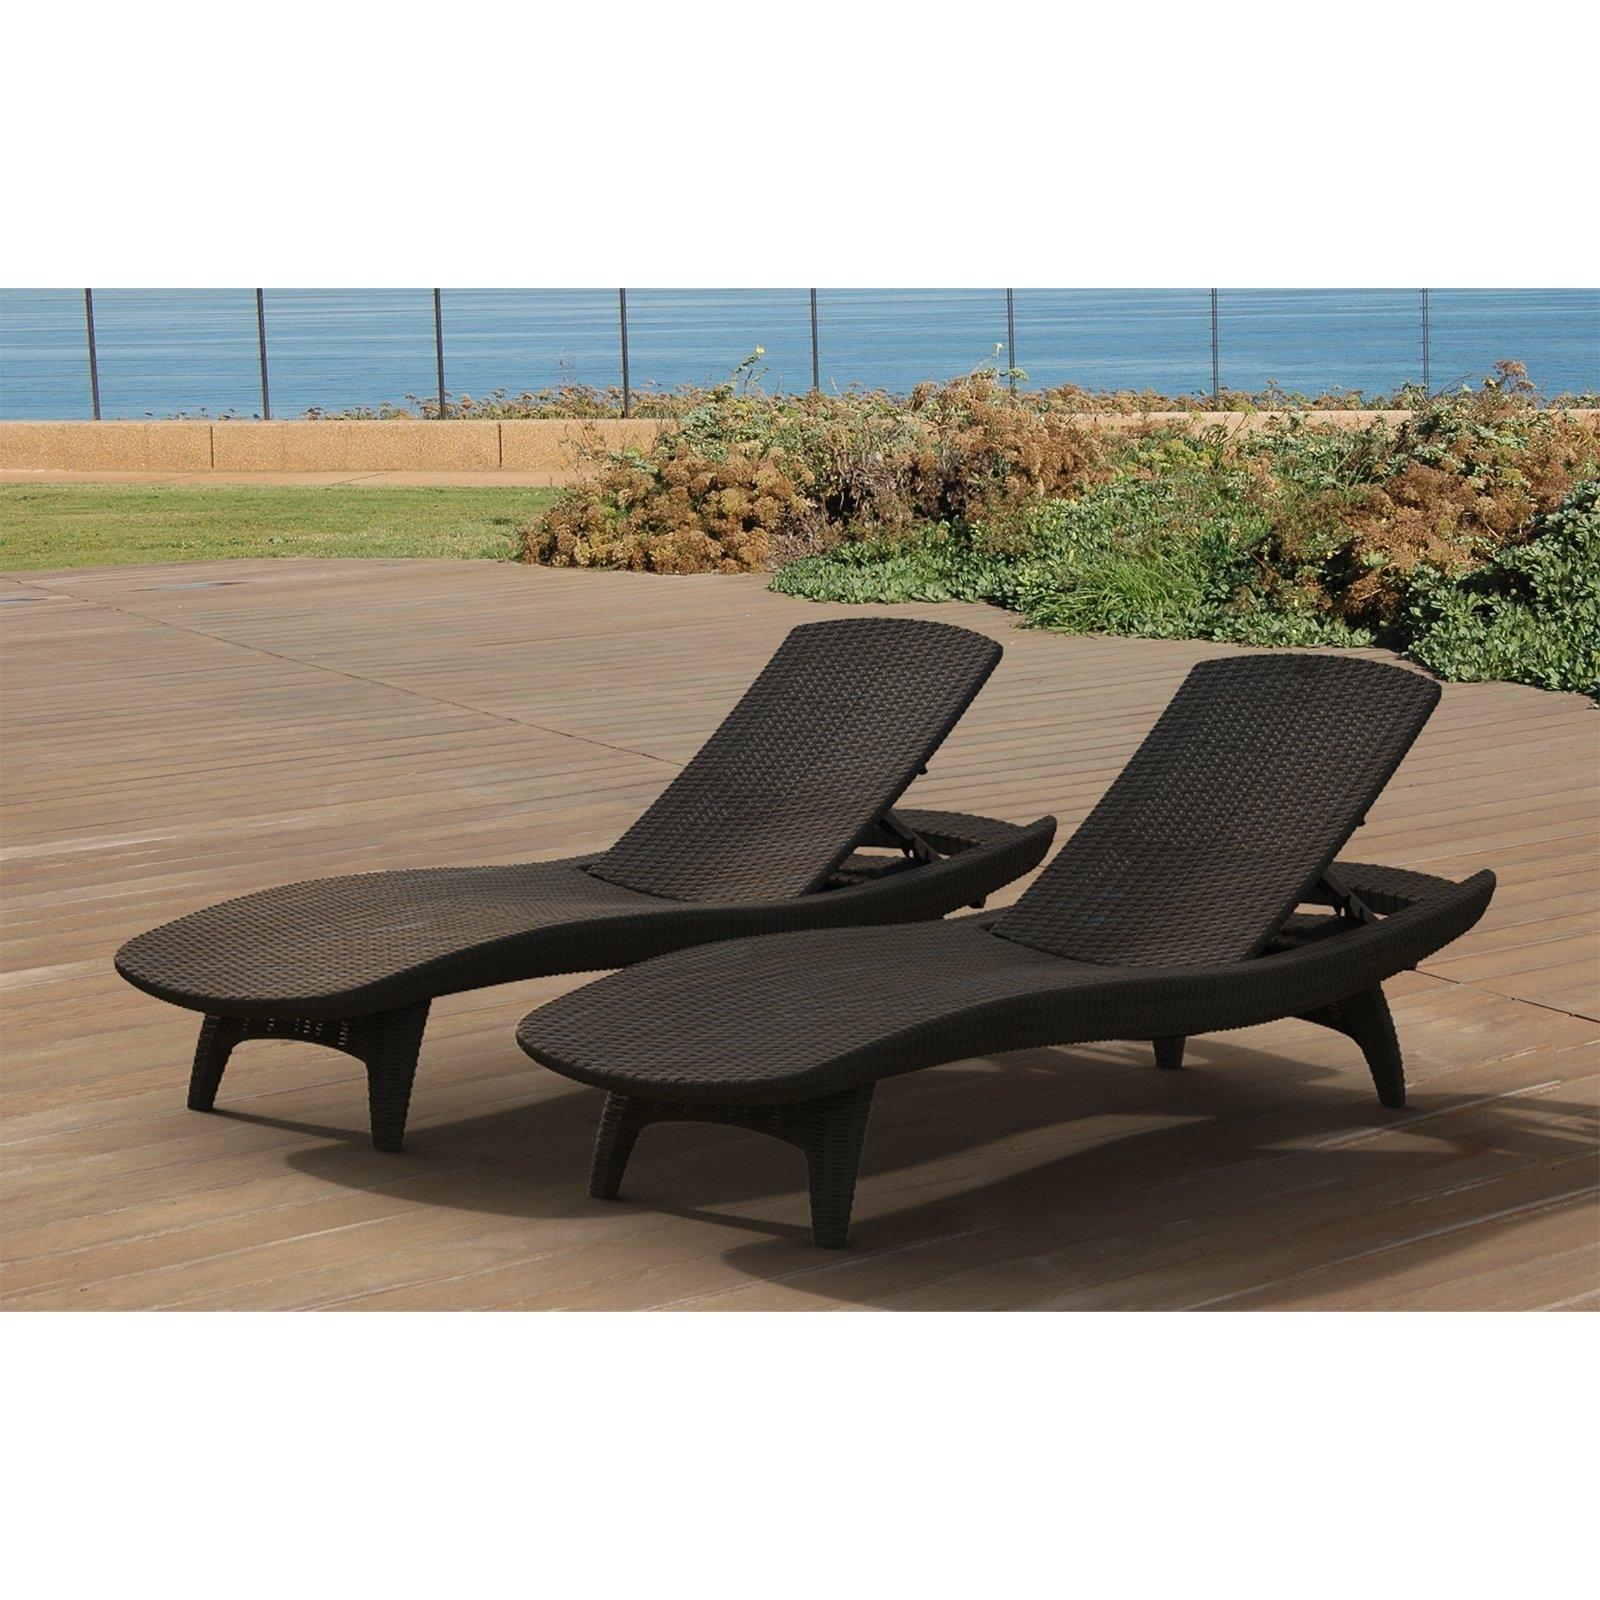 Black Outdoor Chaise Lounge Chairs Pertaining To Well Liked Chaise Lounge Chairs Patio Furniture • Lounge Chairs Ideas (View 2 of 15)